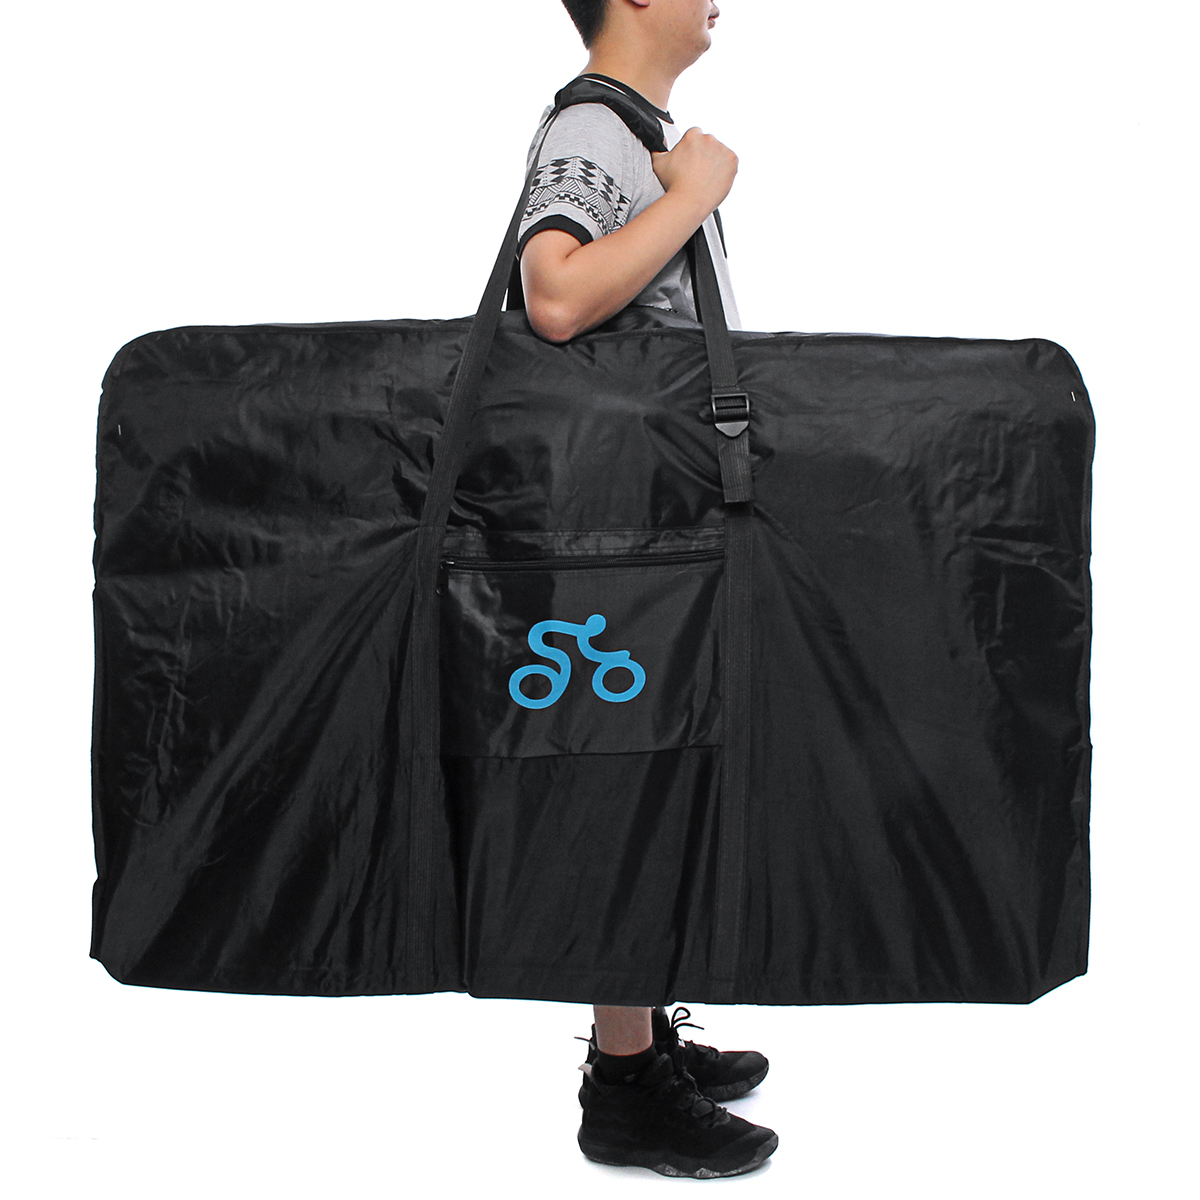 New 1680D Nylon Portable Bicycle Carry Bag for 26 29 Inch Cycling Bike Transport Case Travel